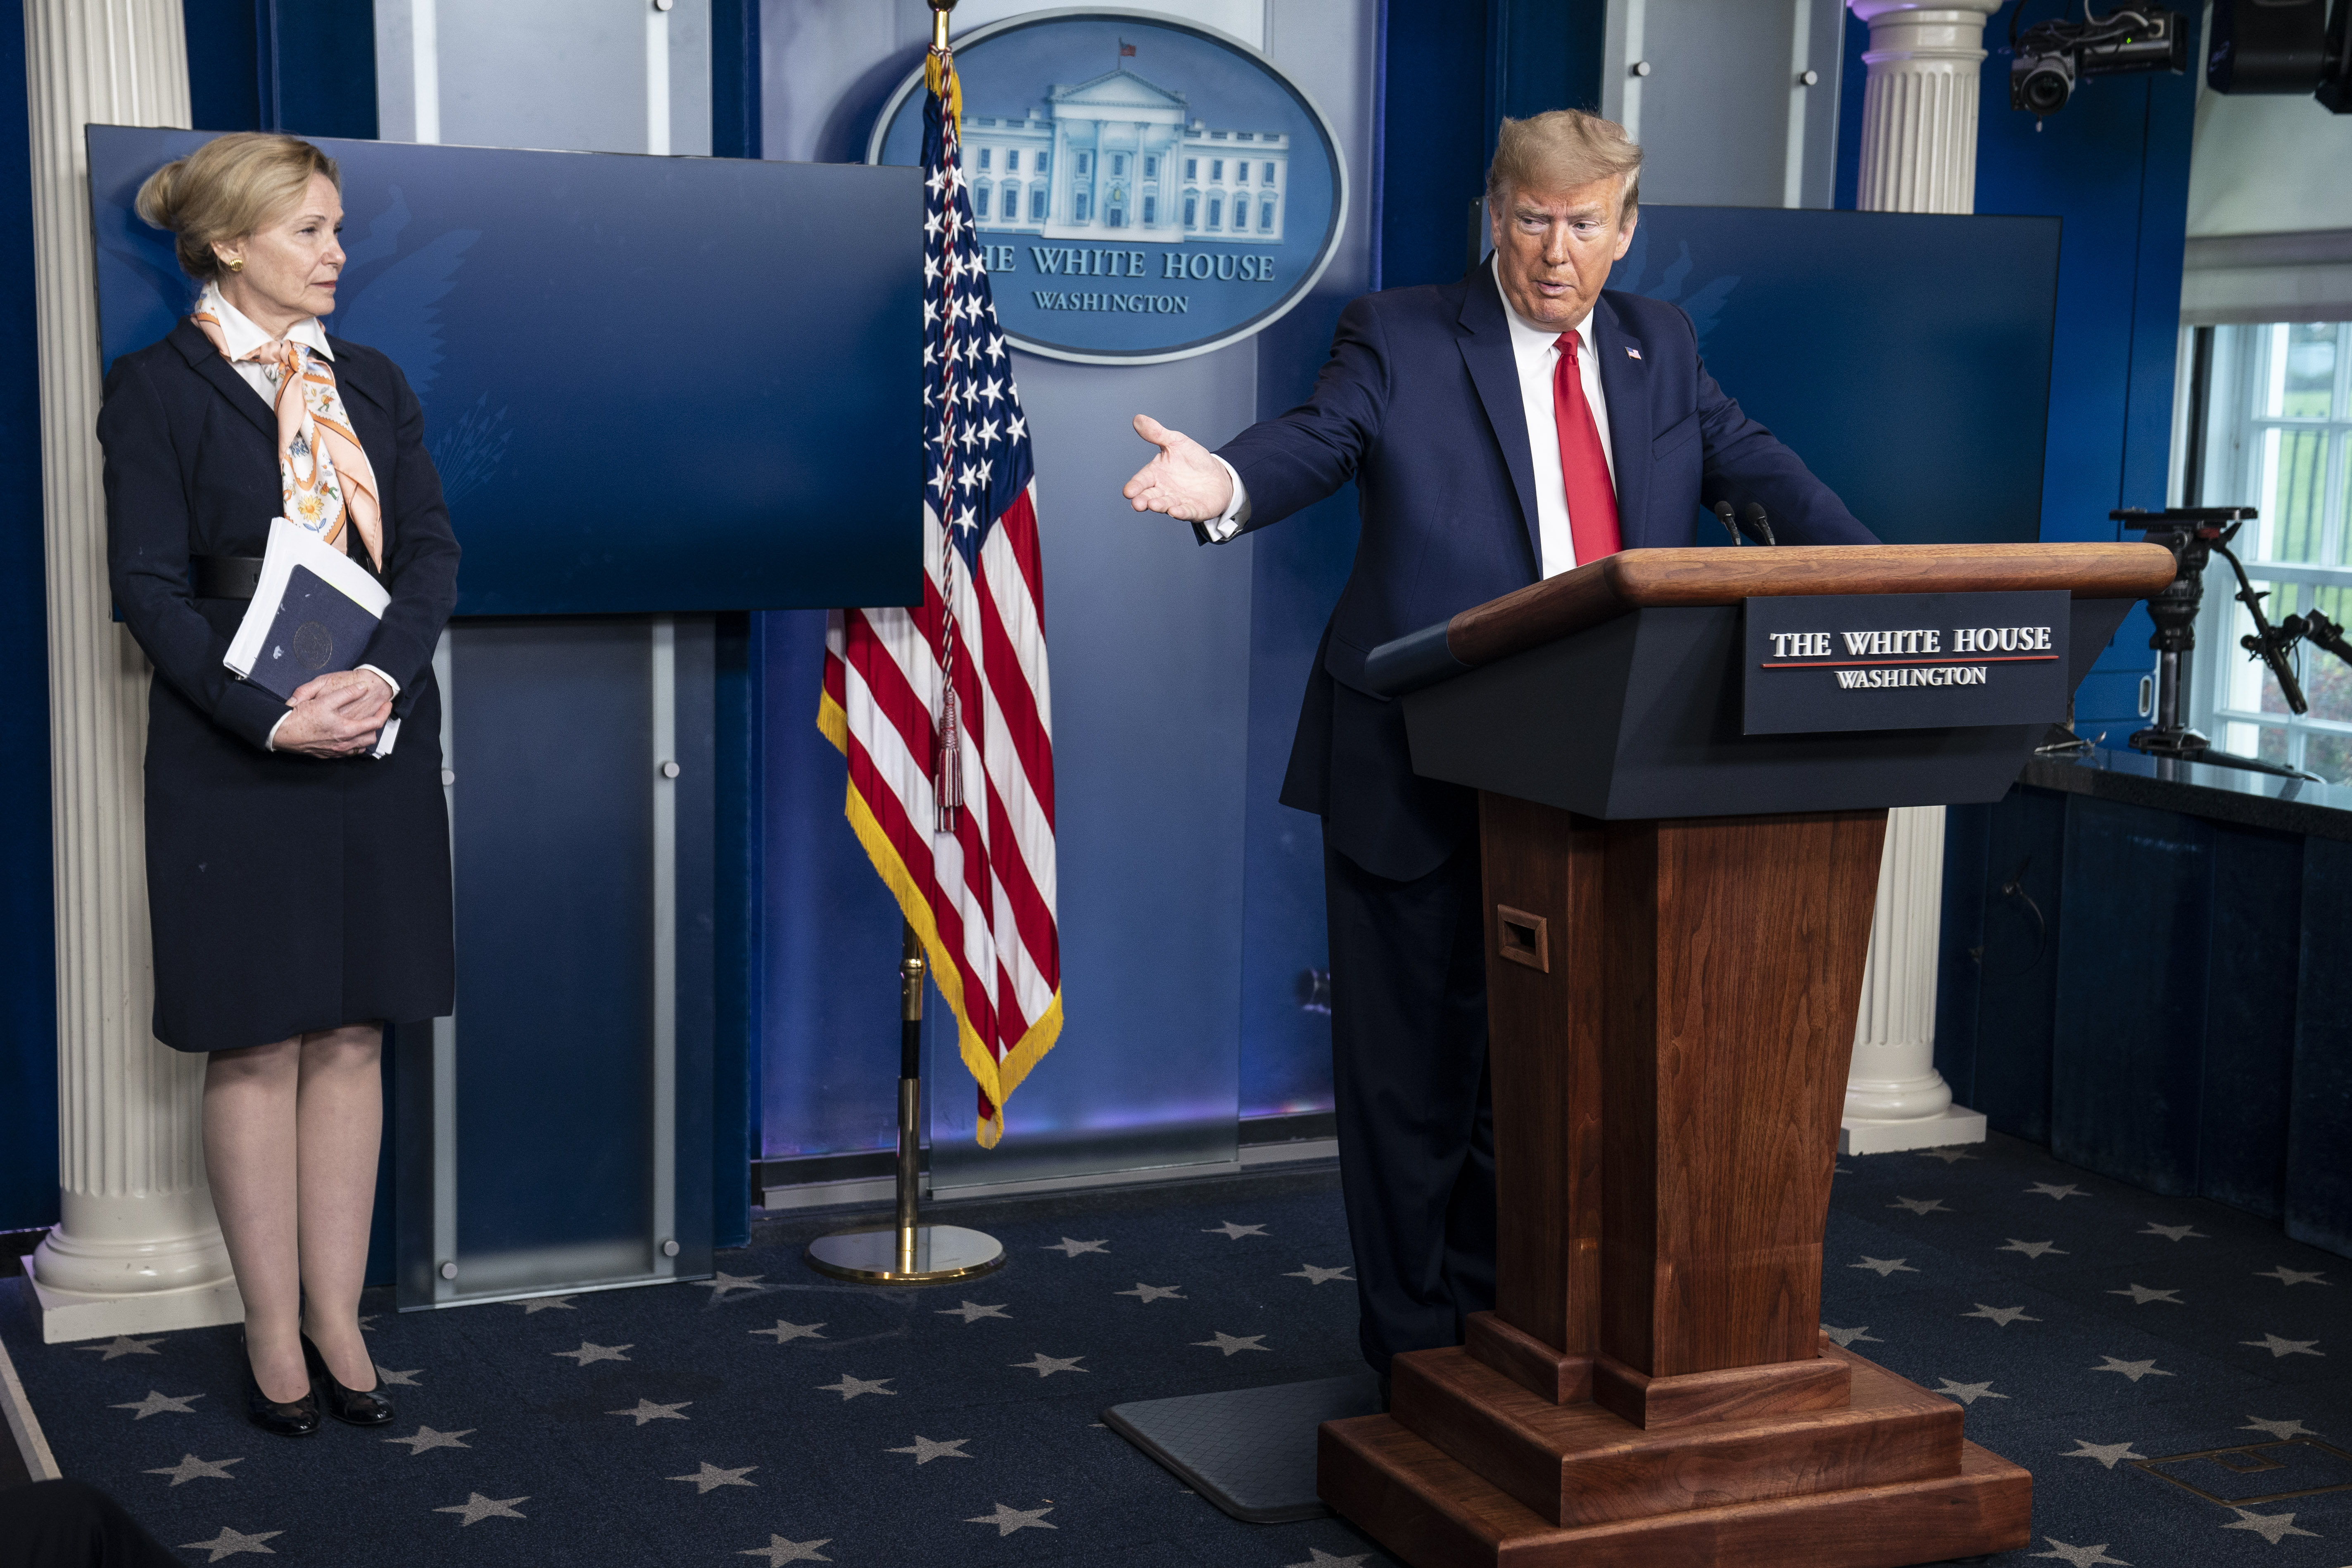 U.S. President Donald Trump delivers remarks during a press briefing with White House coronavirus response coordinator Deborah Birx, on April 18, 2020 in Washington, DC. (Sarah Silbiger/Getty Images)